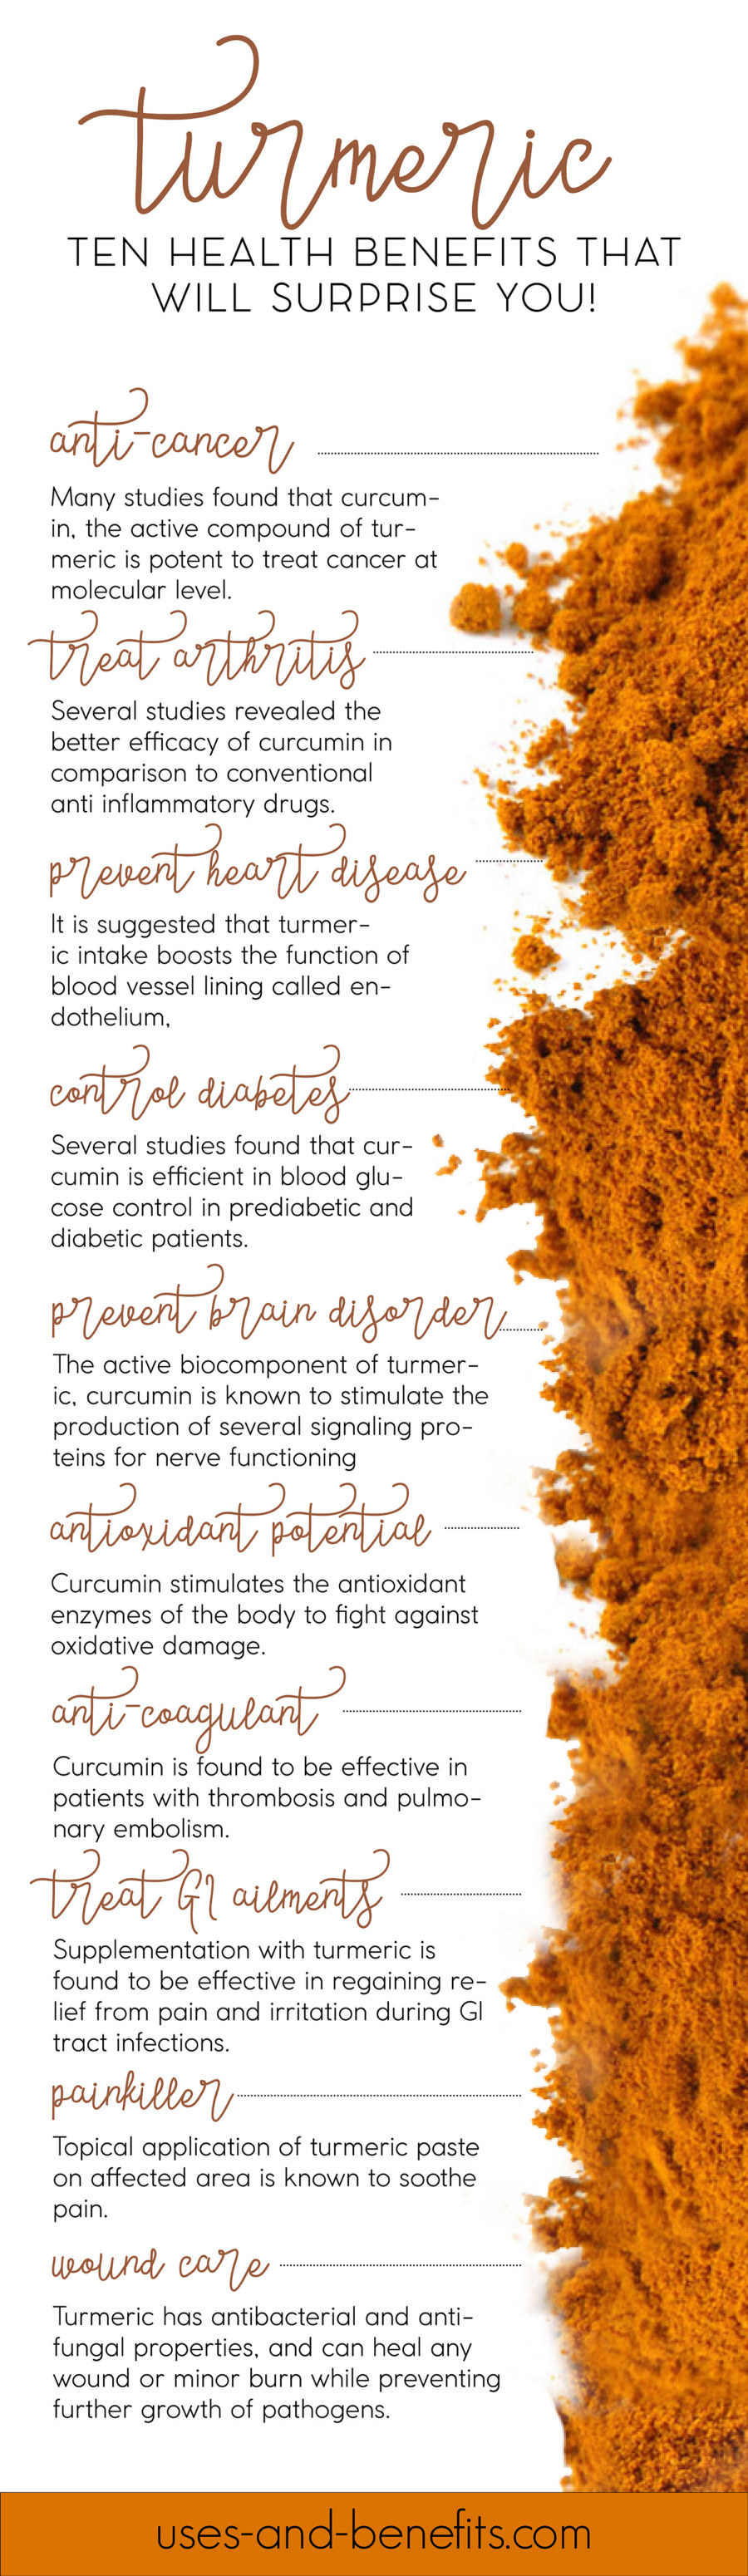 Top surprising health benefits of turmeric